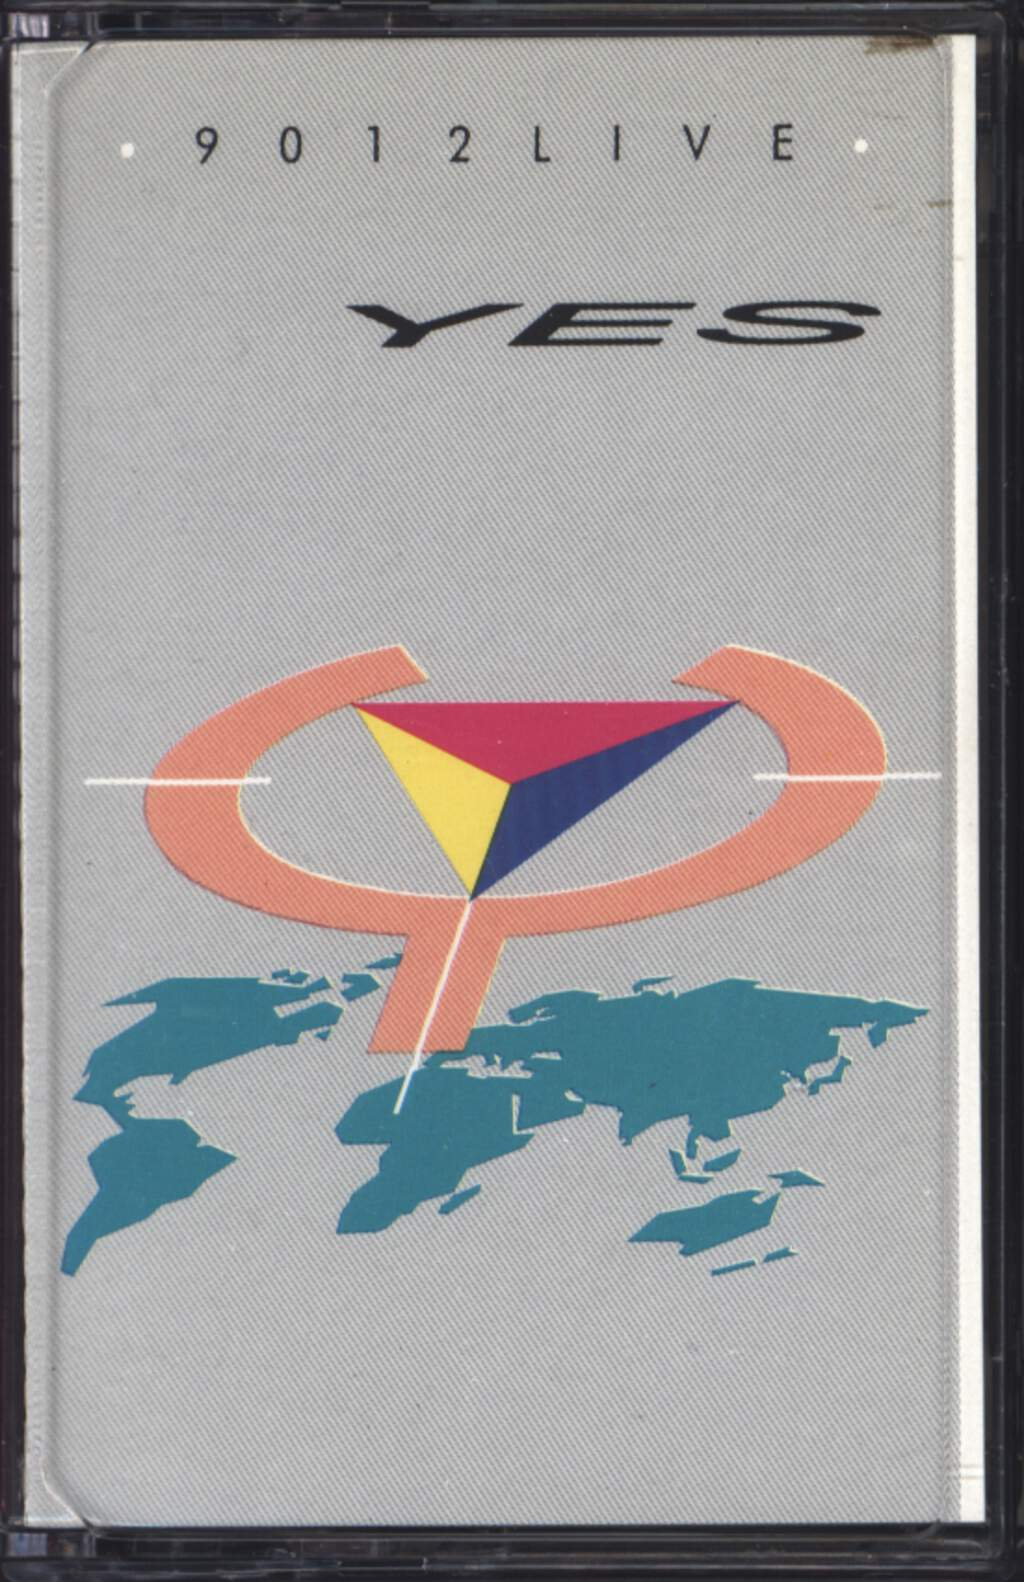 Yes: 9012Live - The Solos, Compact Cassette